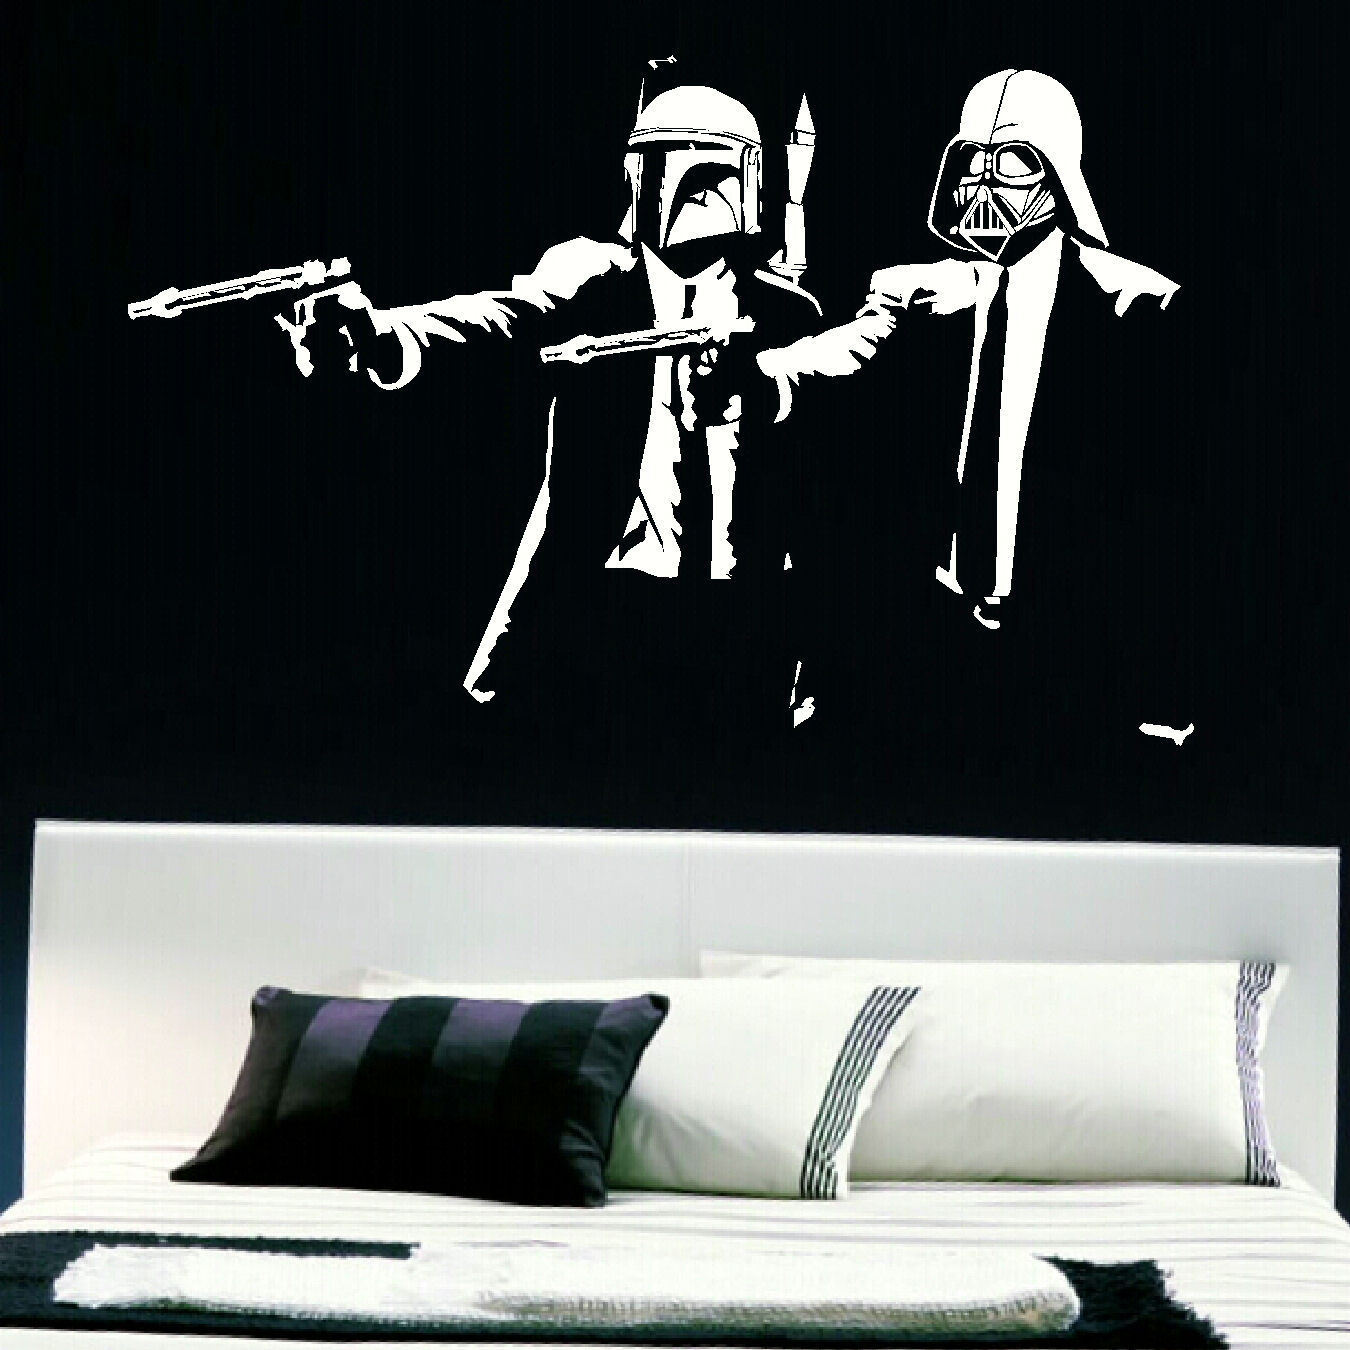 Extra large wall sticker pulp fiction darth vader boba fett star extra large wall sticker pulp fiction darth vader boba fett star wars starwars star amipublicfo Gallery